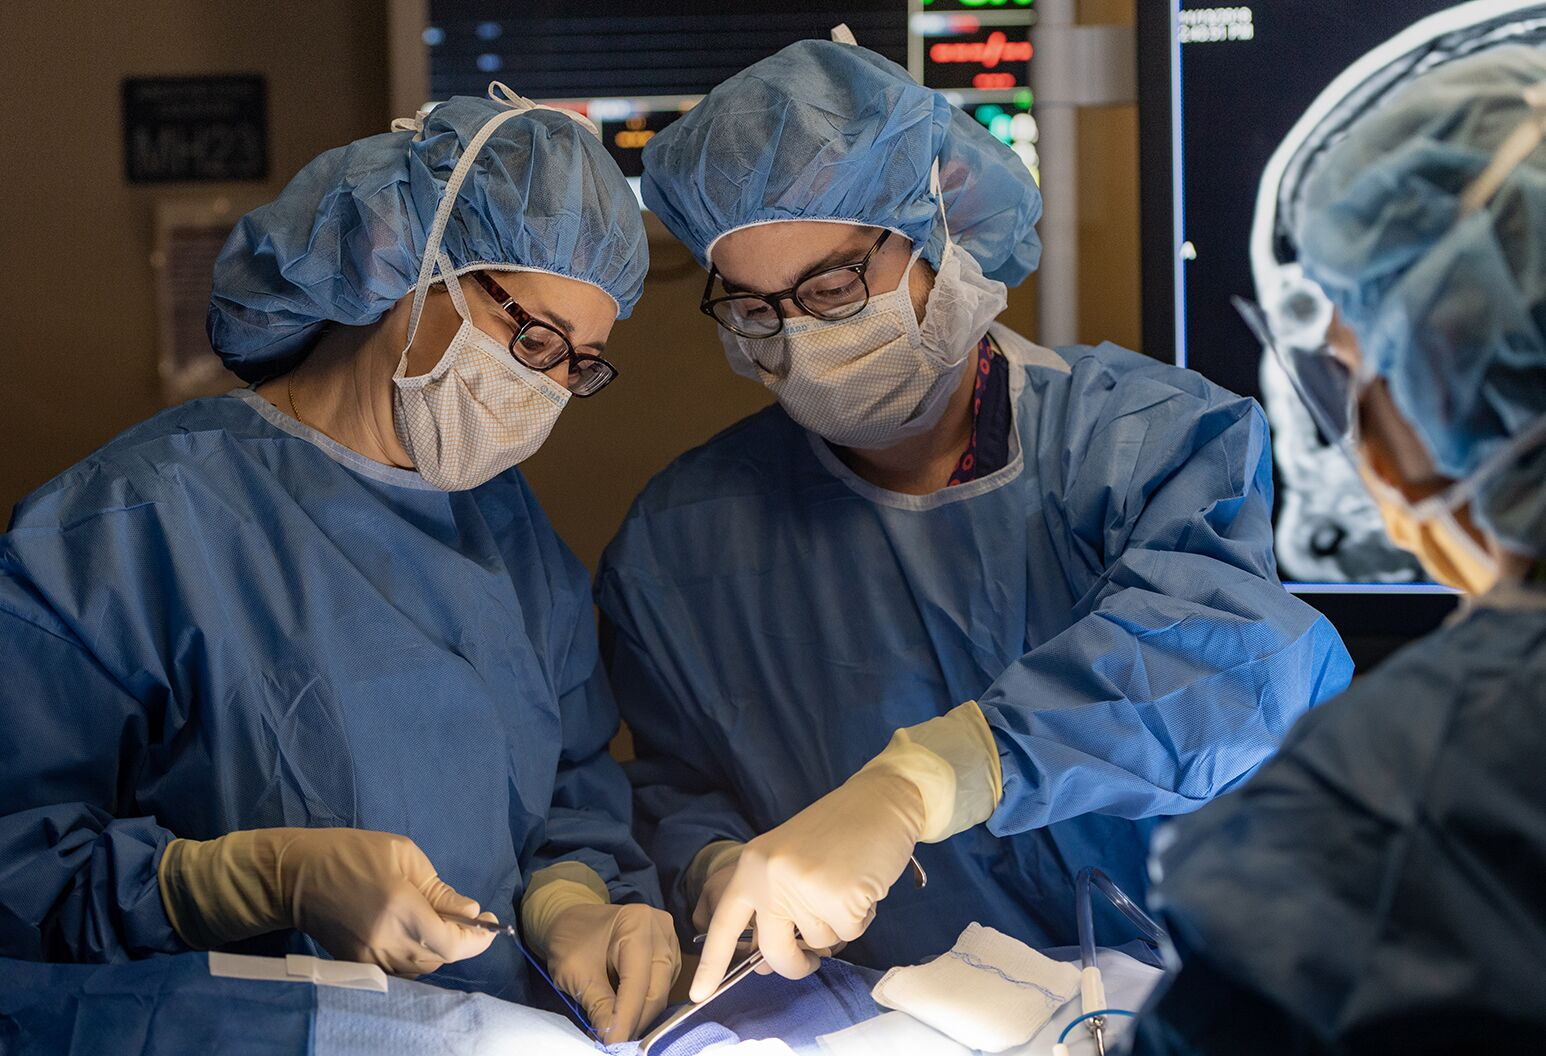 Two physicians in full blue scrubs performing surgery